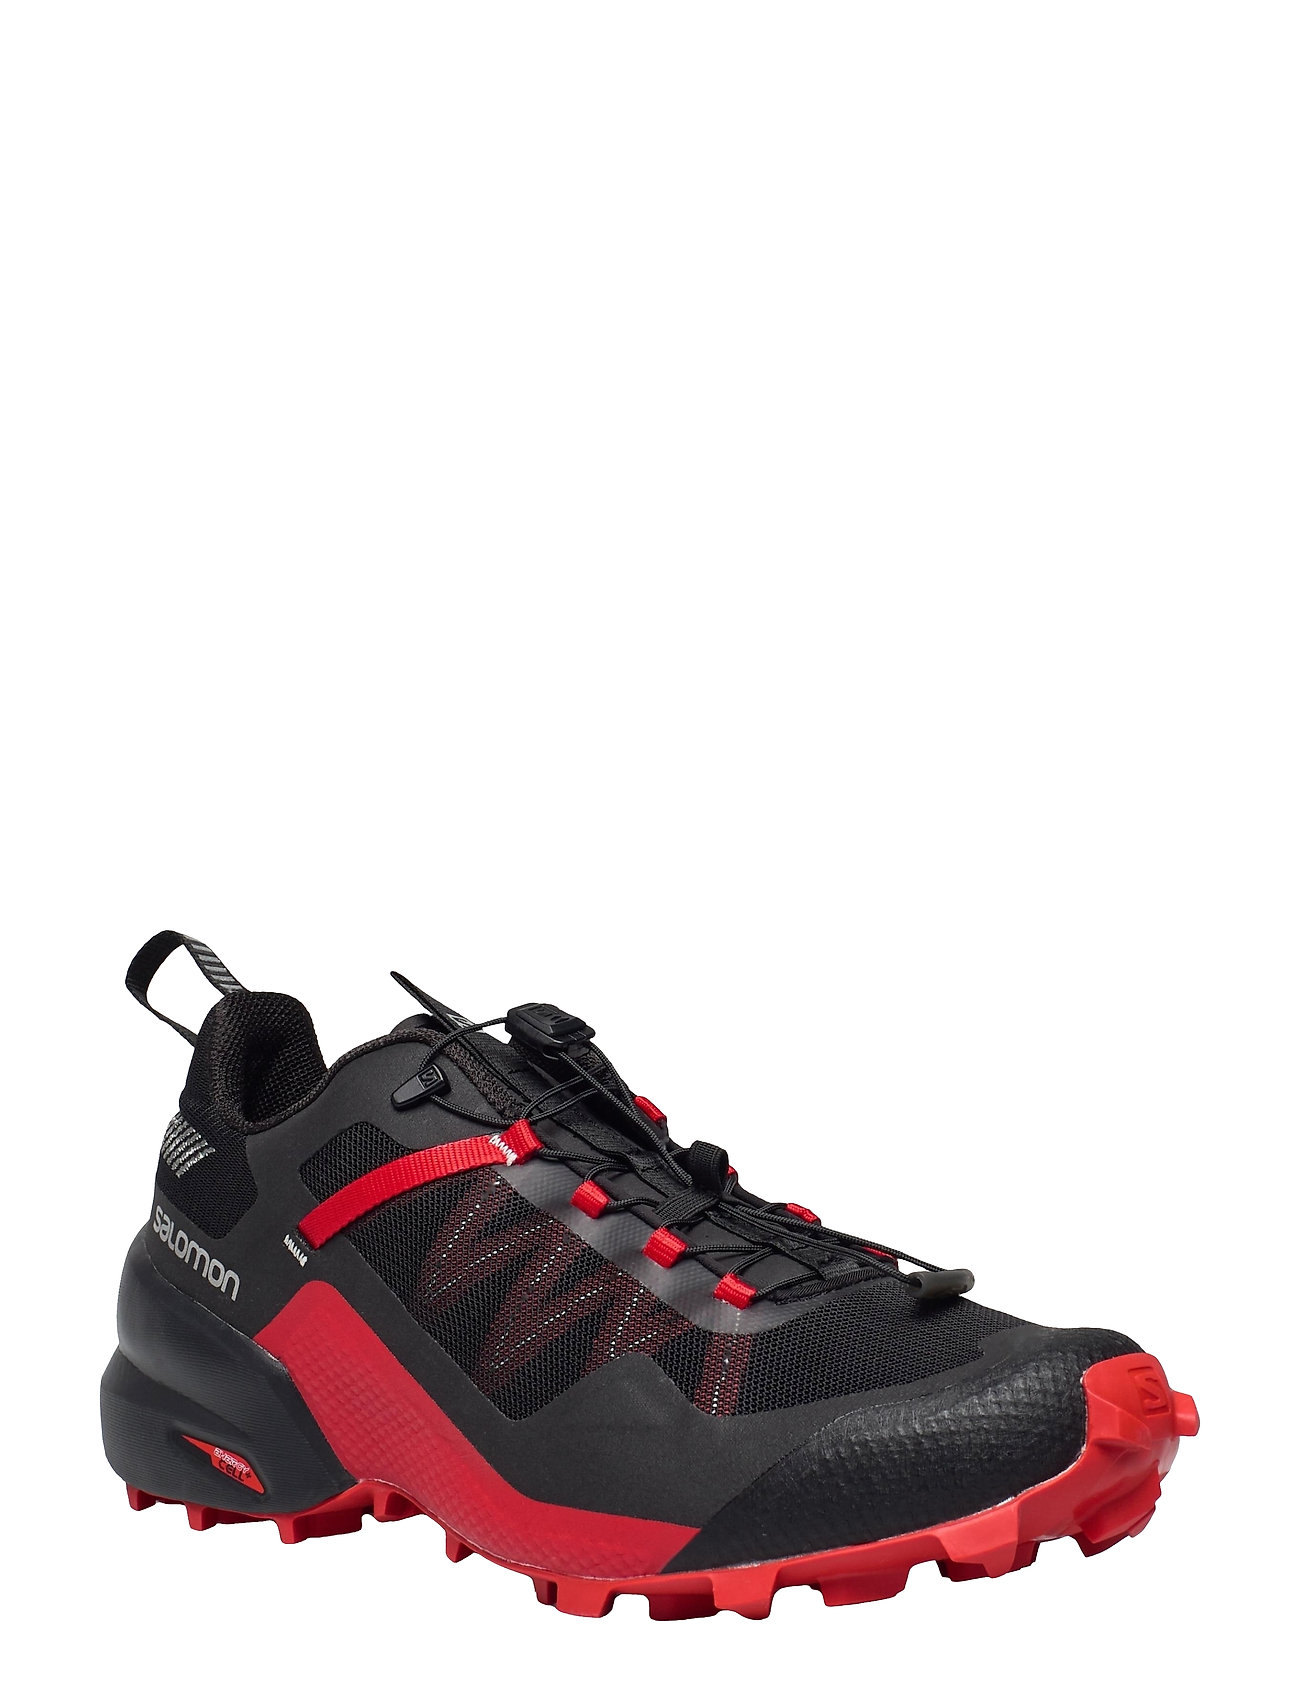 Image of City Cross Black/Black/Goji Berry Low-top Sneakers Rød Salomon (3523883459)